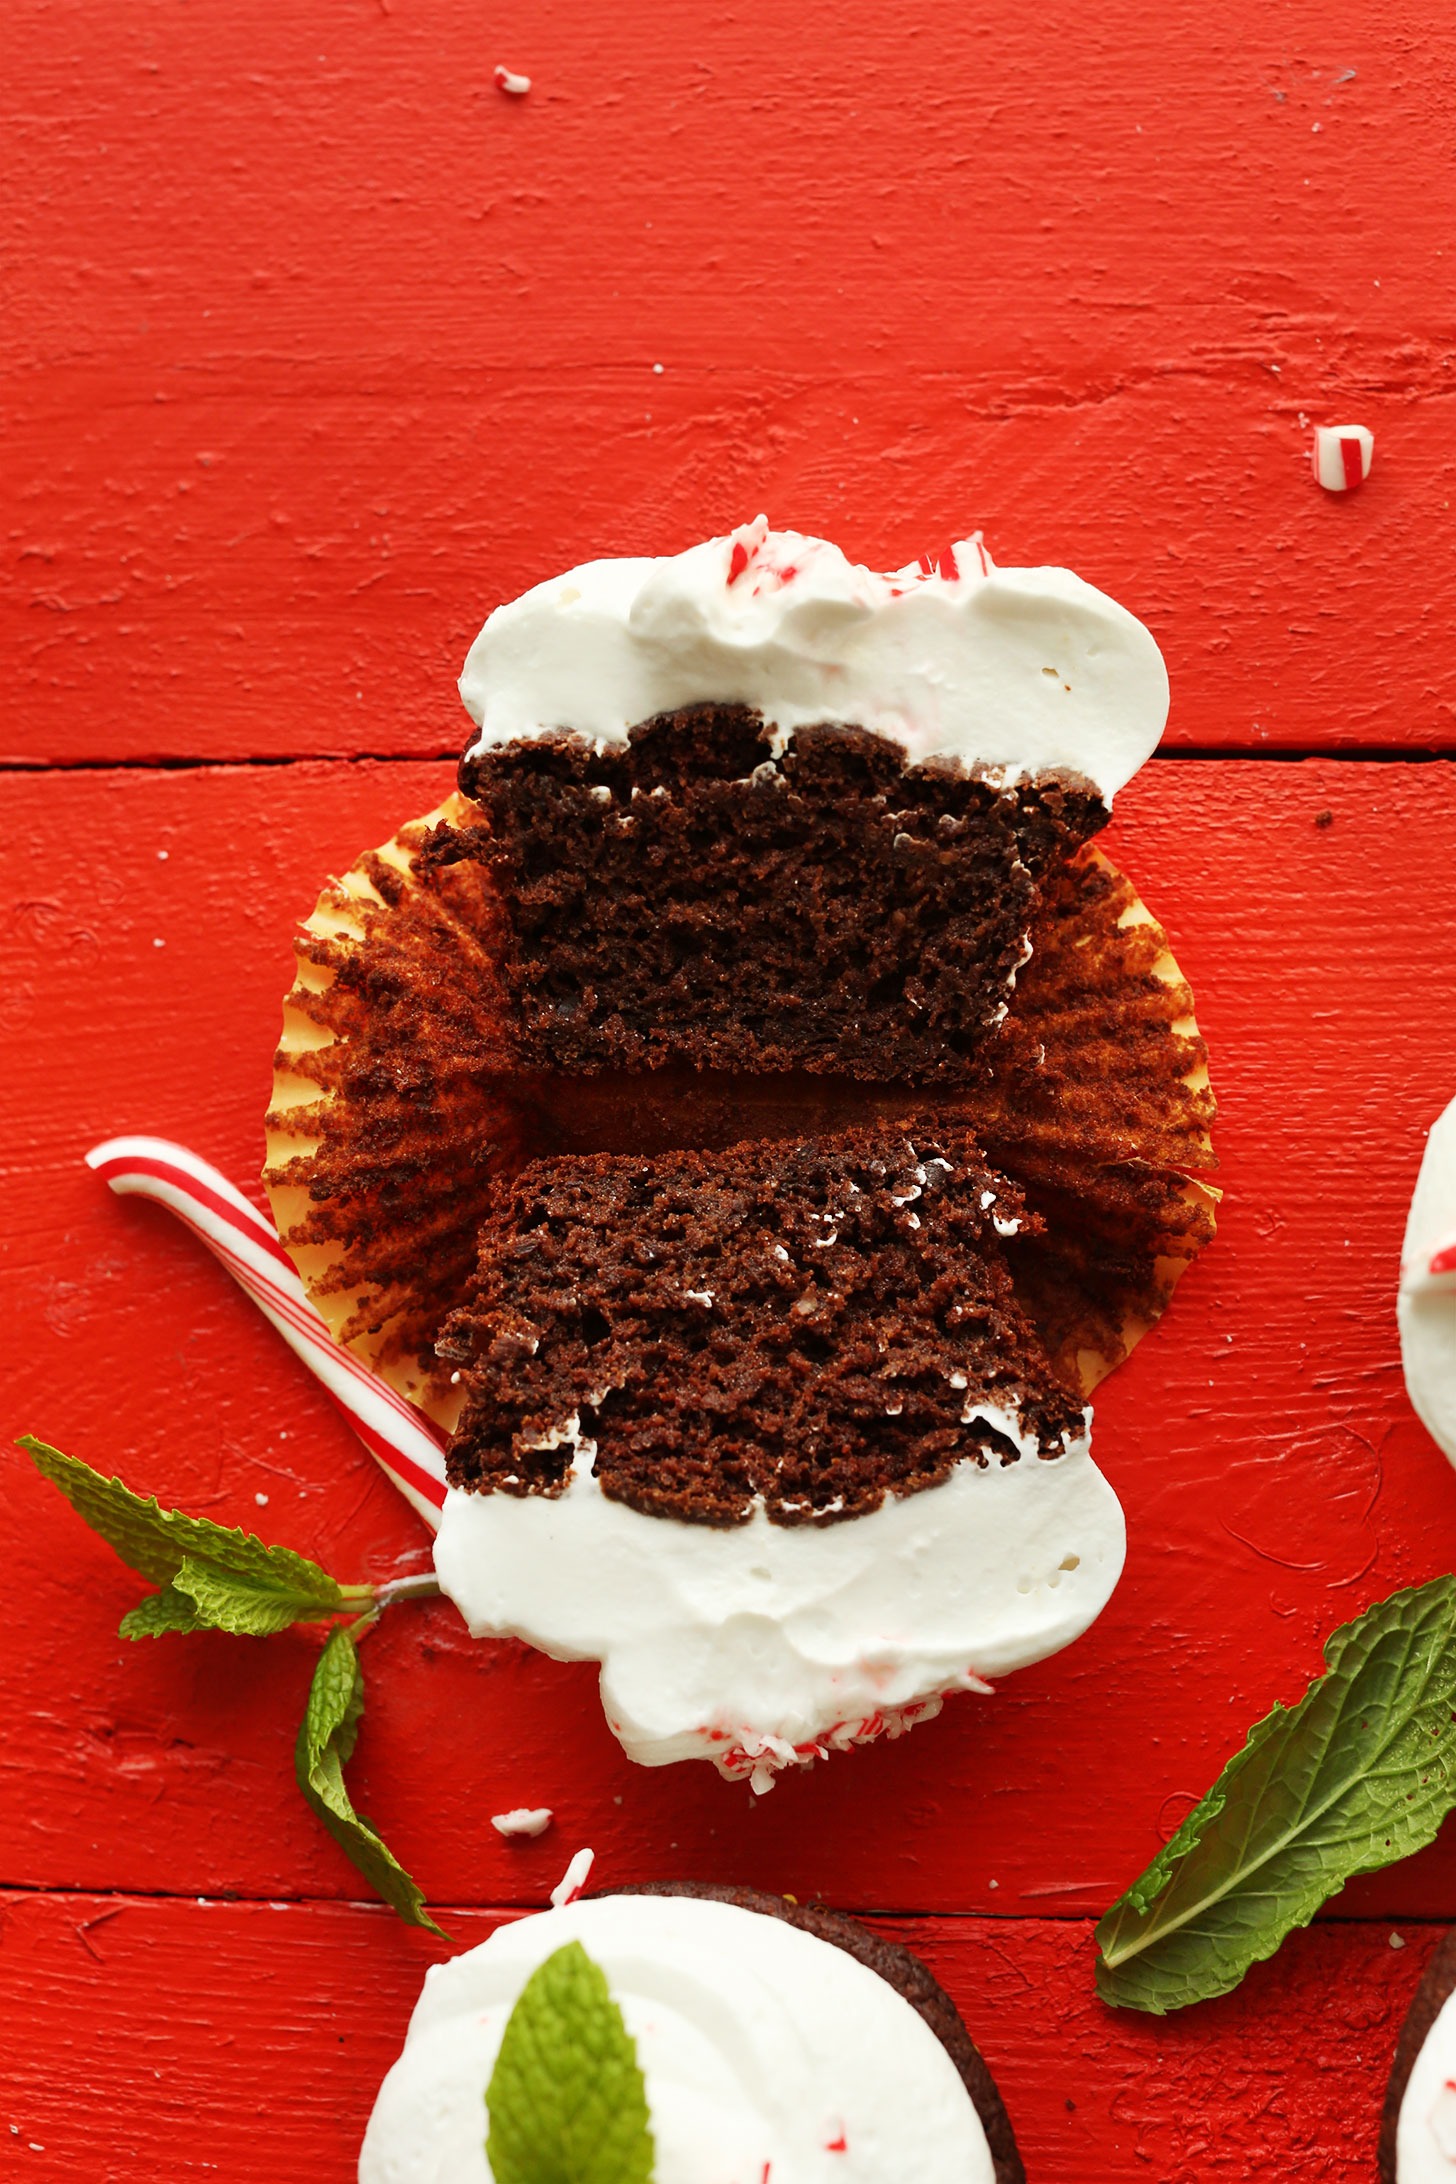 Sliced Chocolate Peppermint Cupcake for a gluten-free vegan holiday dessert